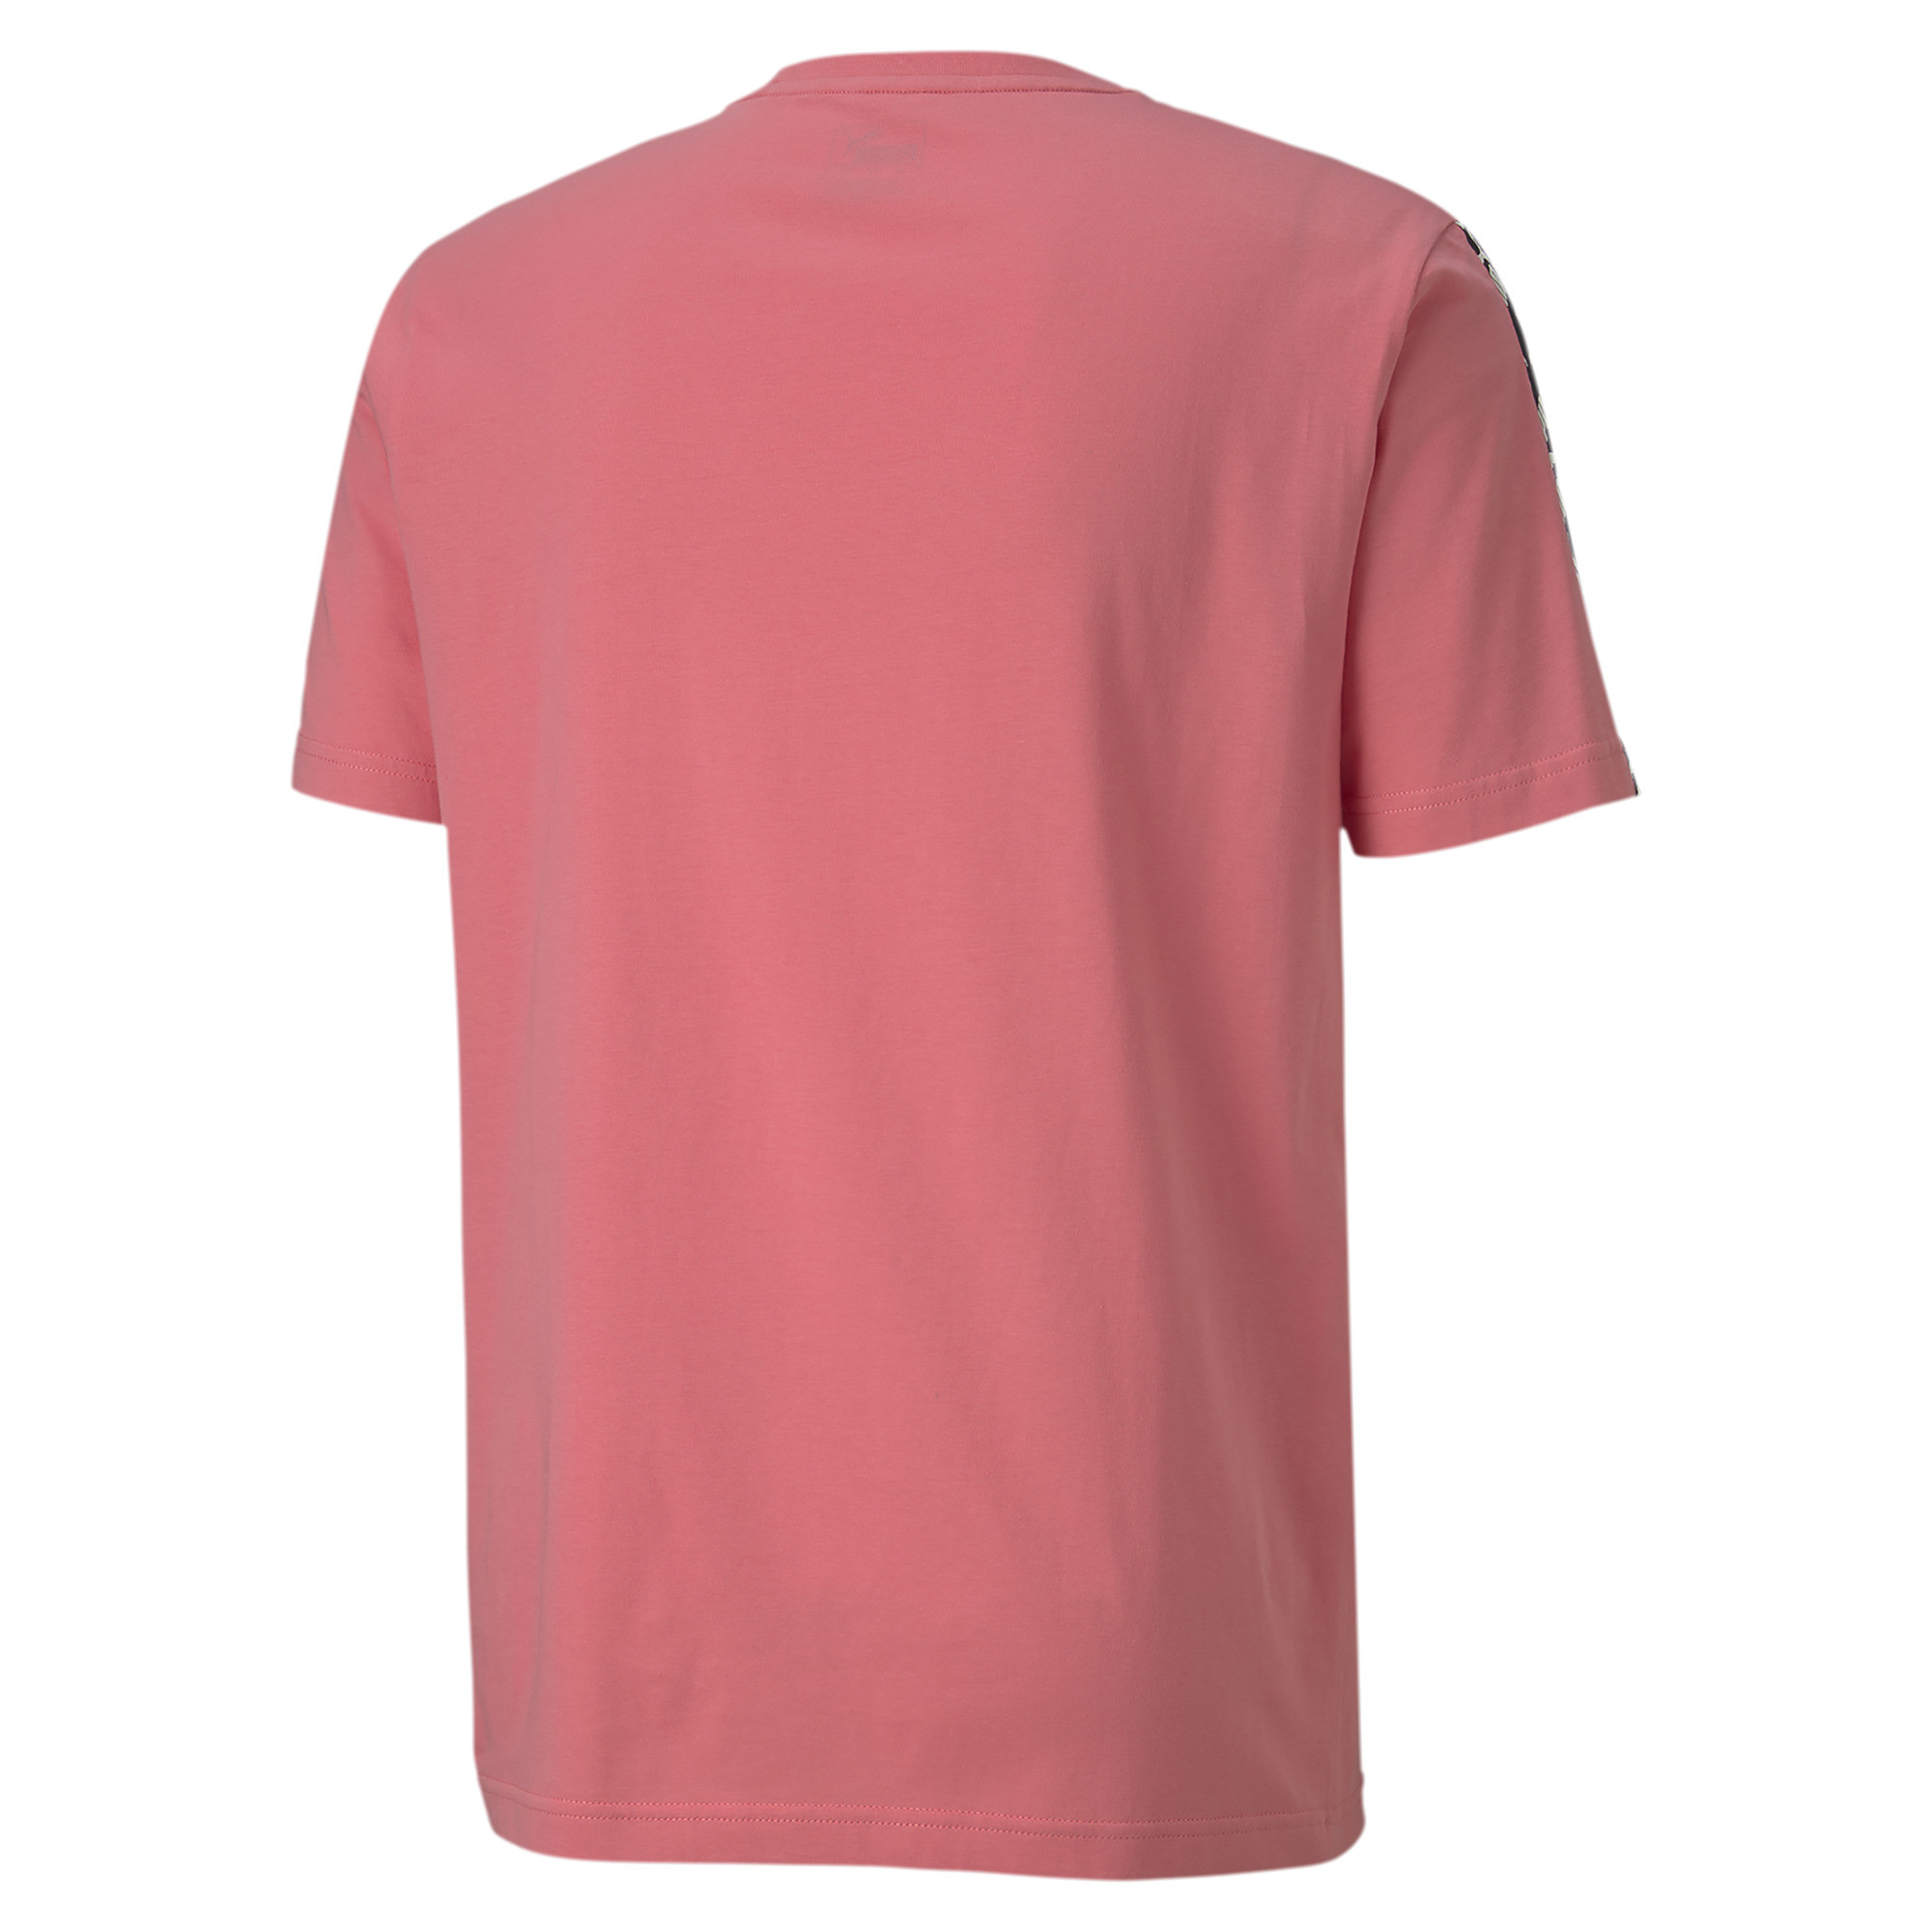 PUMA-Amplified-Men-039-s-Tee-Men-Tee-Basics thumbnail 21